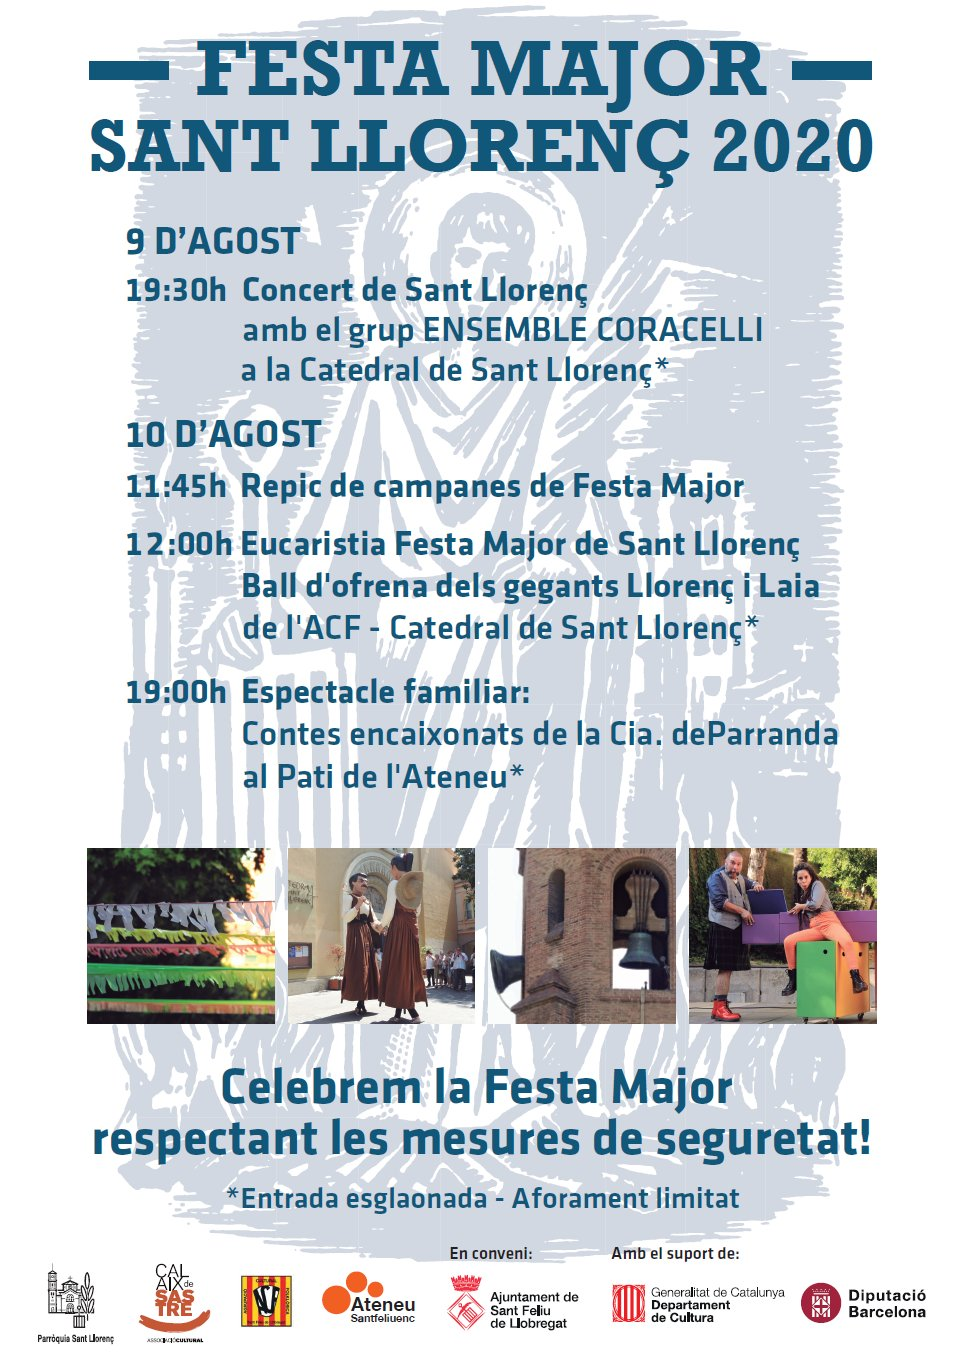 Festa Major Sant Llorenç 2020